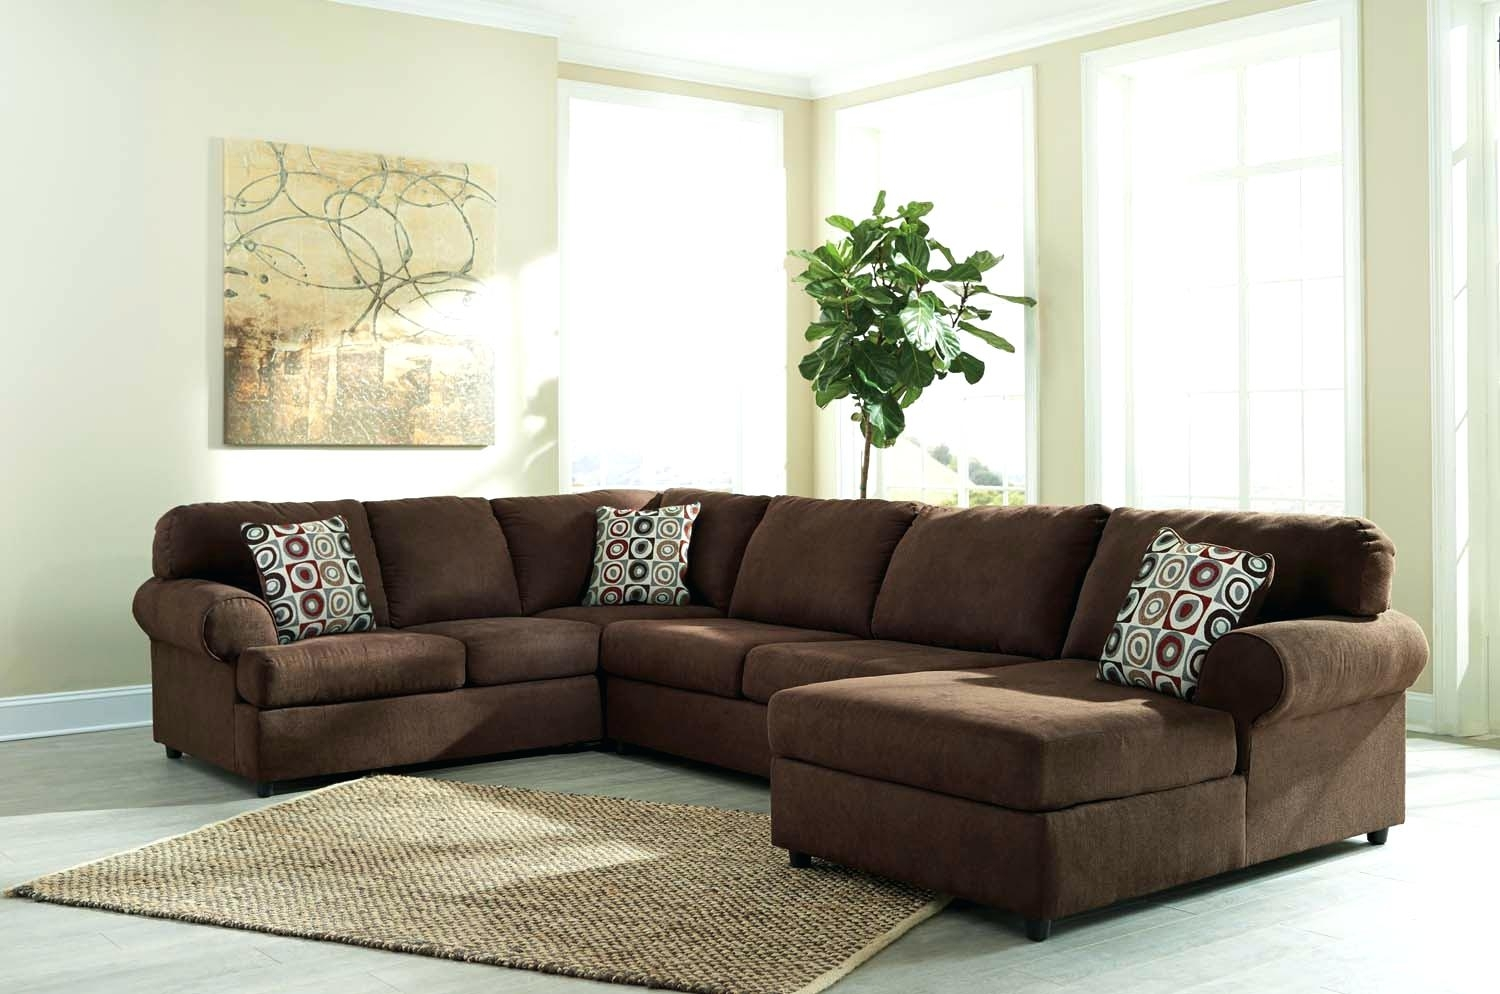 3 Piece Sectional Haven Blue Steel 3 Piece Sectional 3 Pc Reclining for Haven Blue Steel 3 Piece Sectionals (Image 3 of 30)